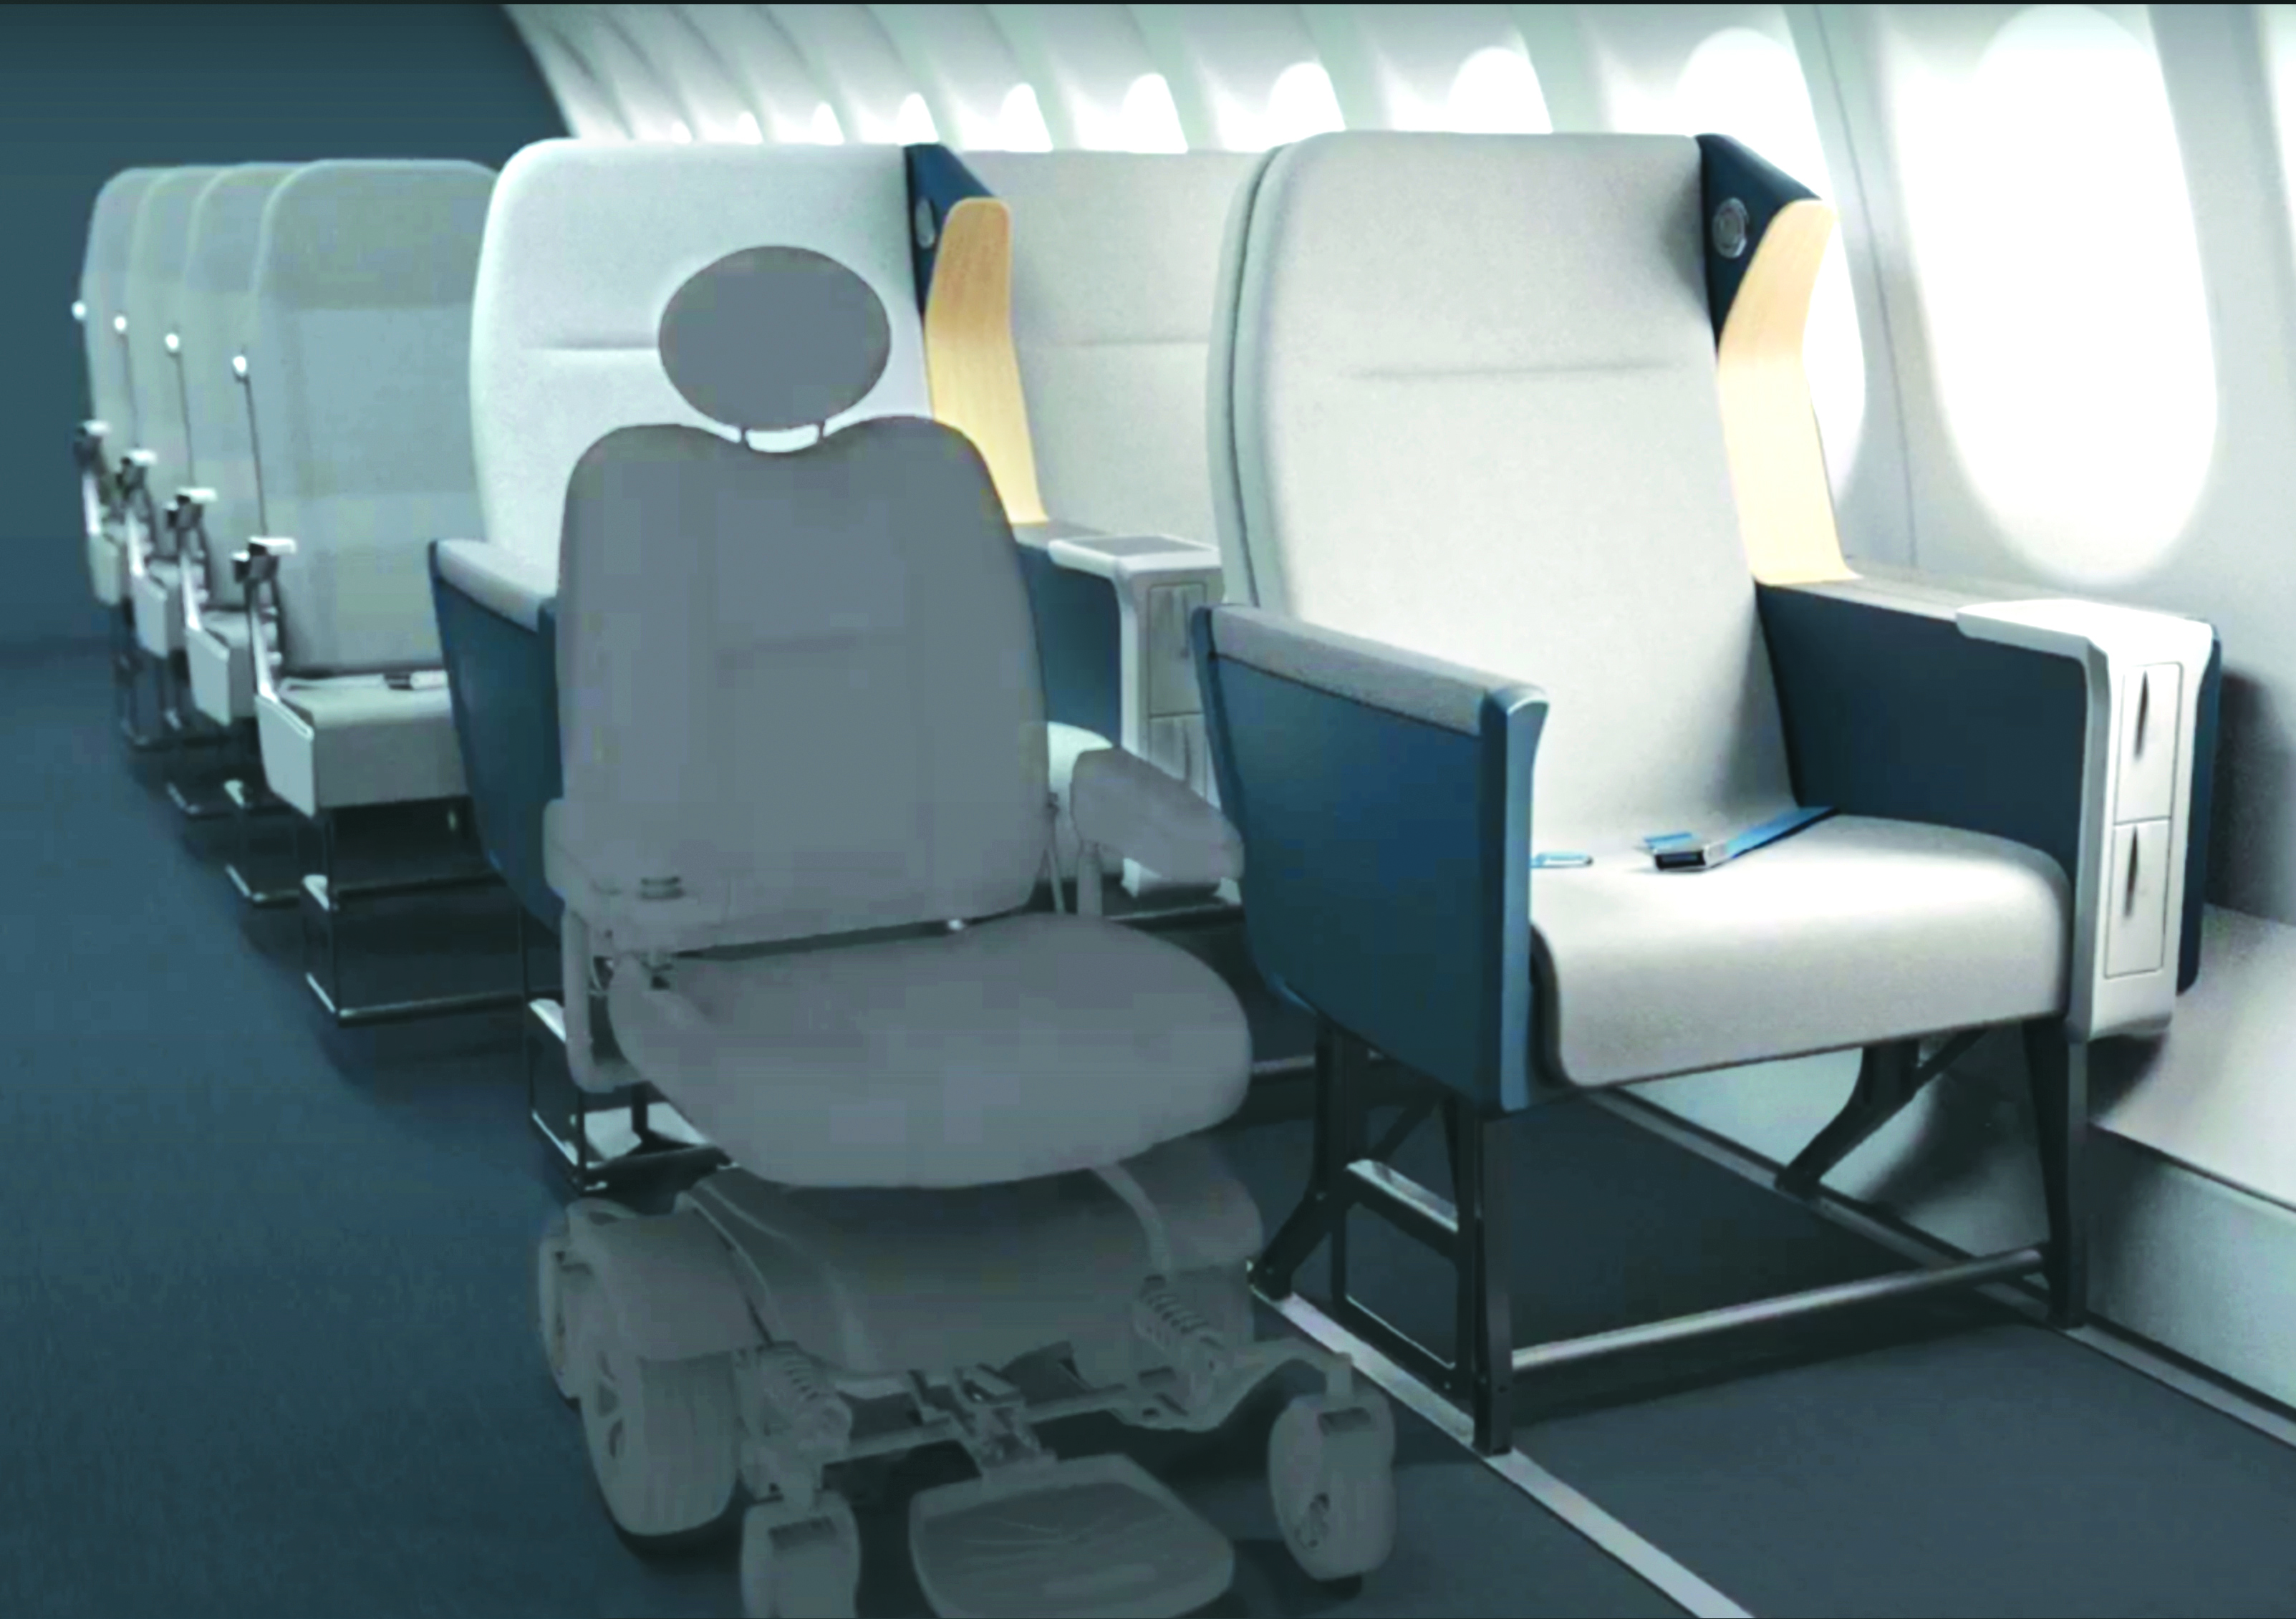 Plan seats with an empty spot for a wheelchair accessible spot